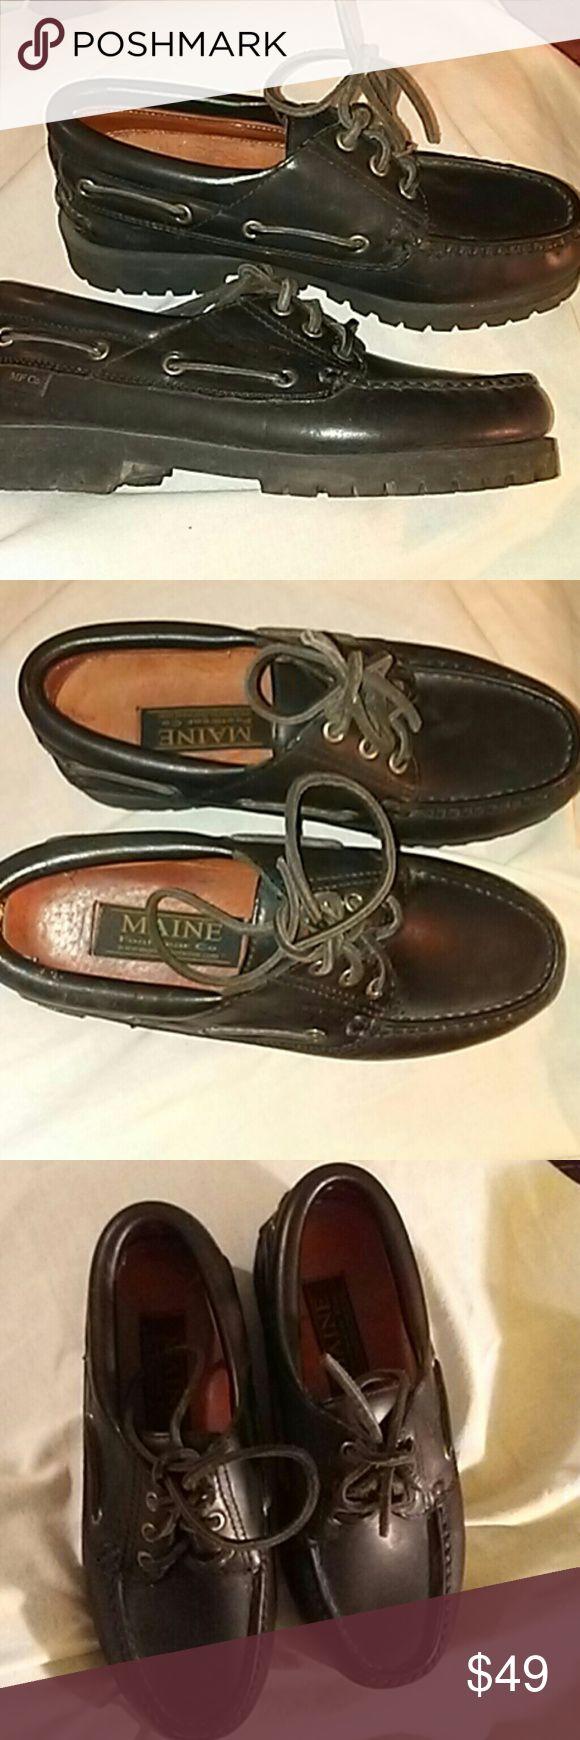 Maine Footwear Company Black leather Boat Shoes New never worn Maine Footwear Company High Grade Leather boat shoes docksiders maine manufacturing company   Shoes Flats & Loafers